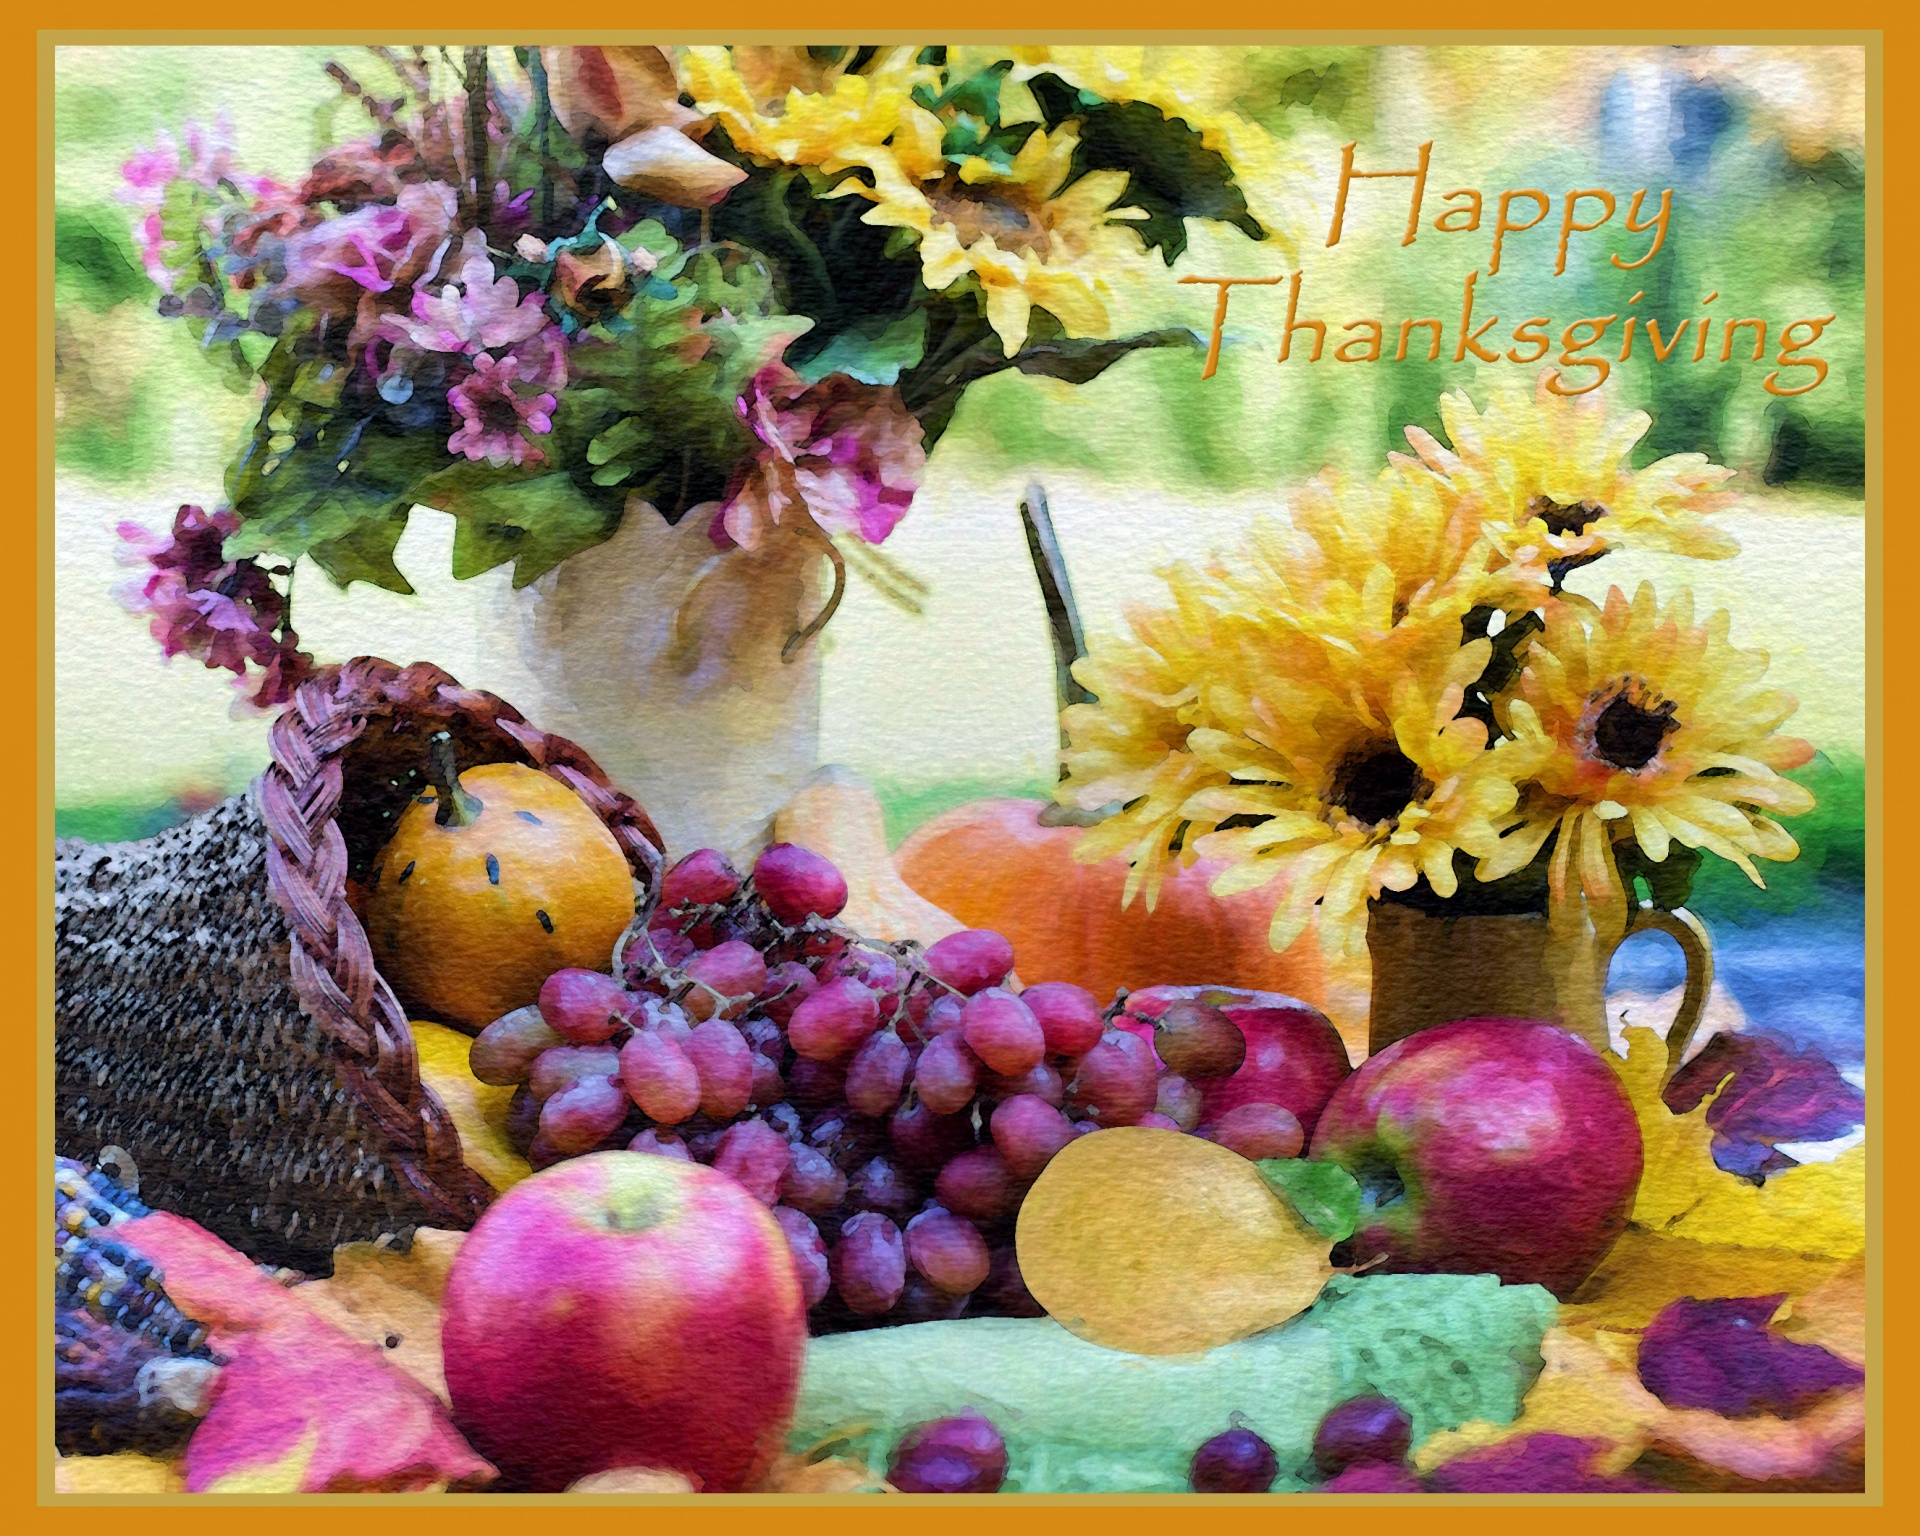 Happy Thanksgiving, Gratitude, Thanksgiving Day